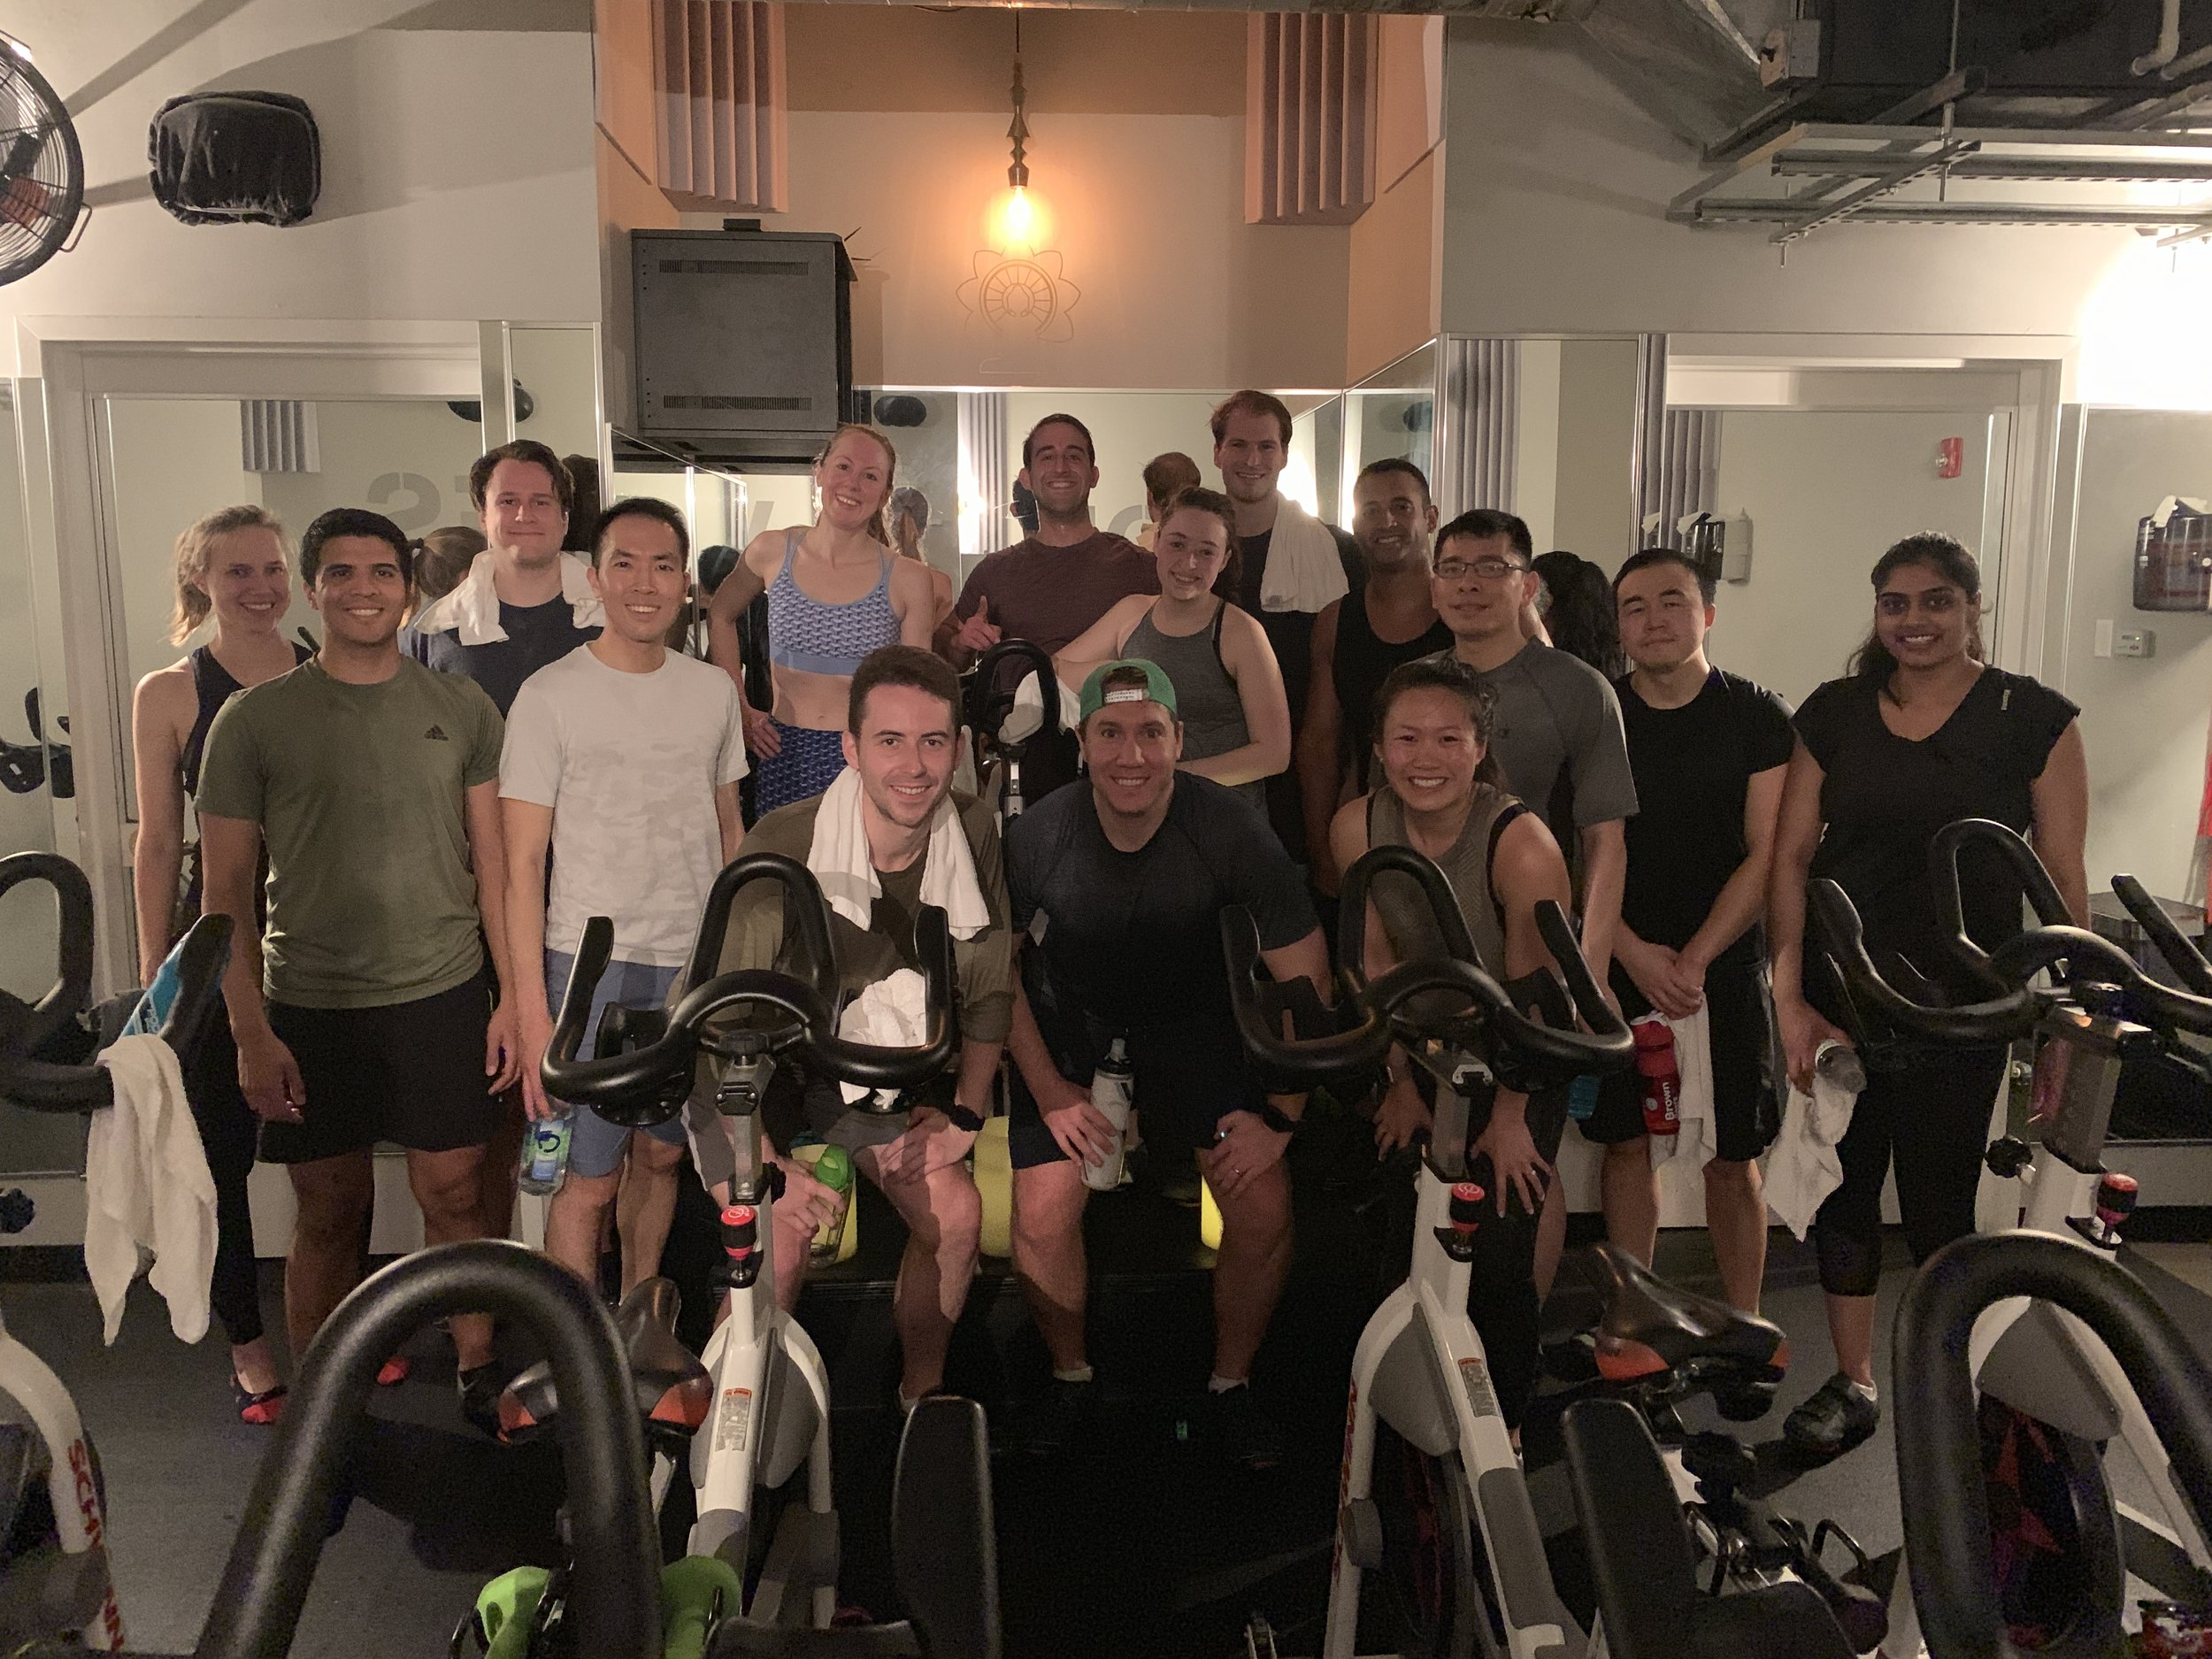 Spin & Brunch - May 11, 2019